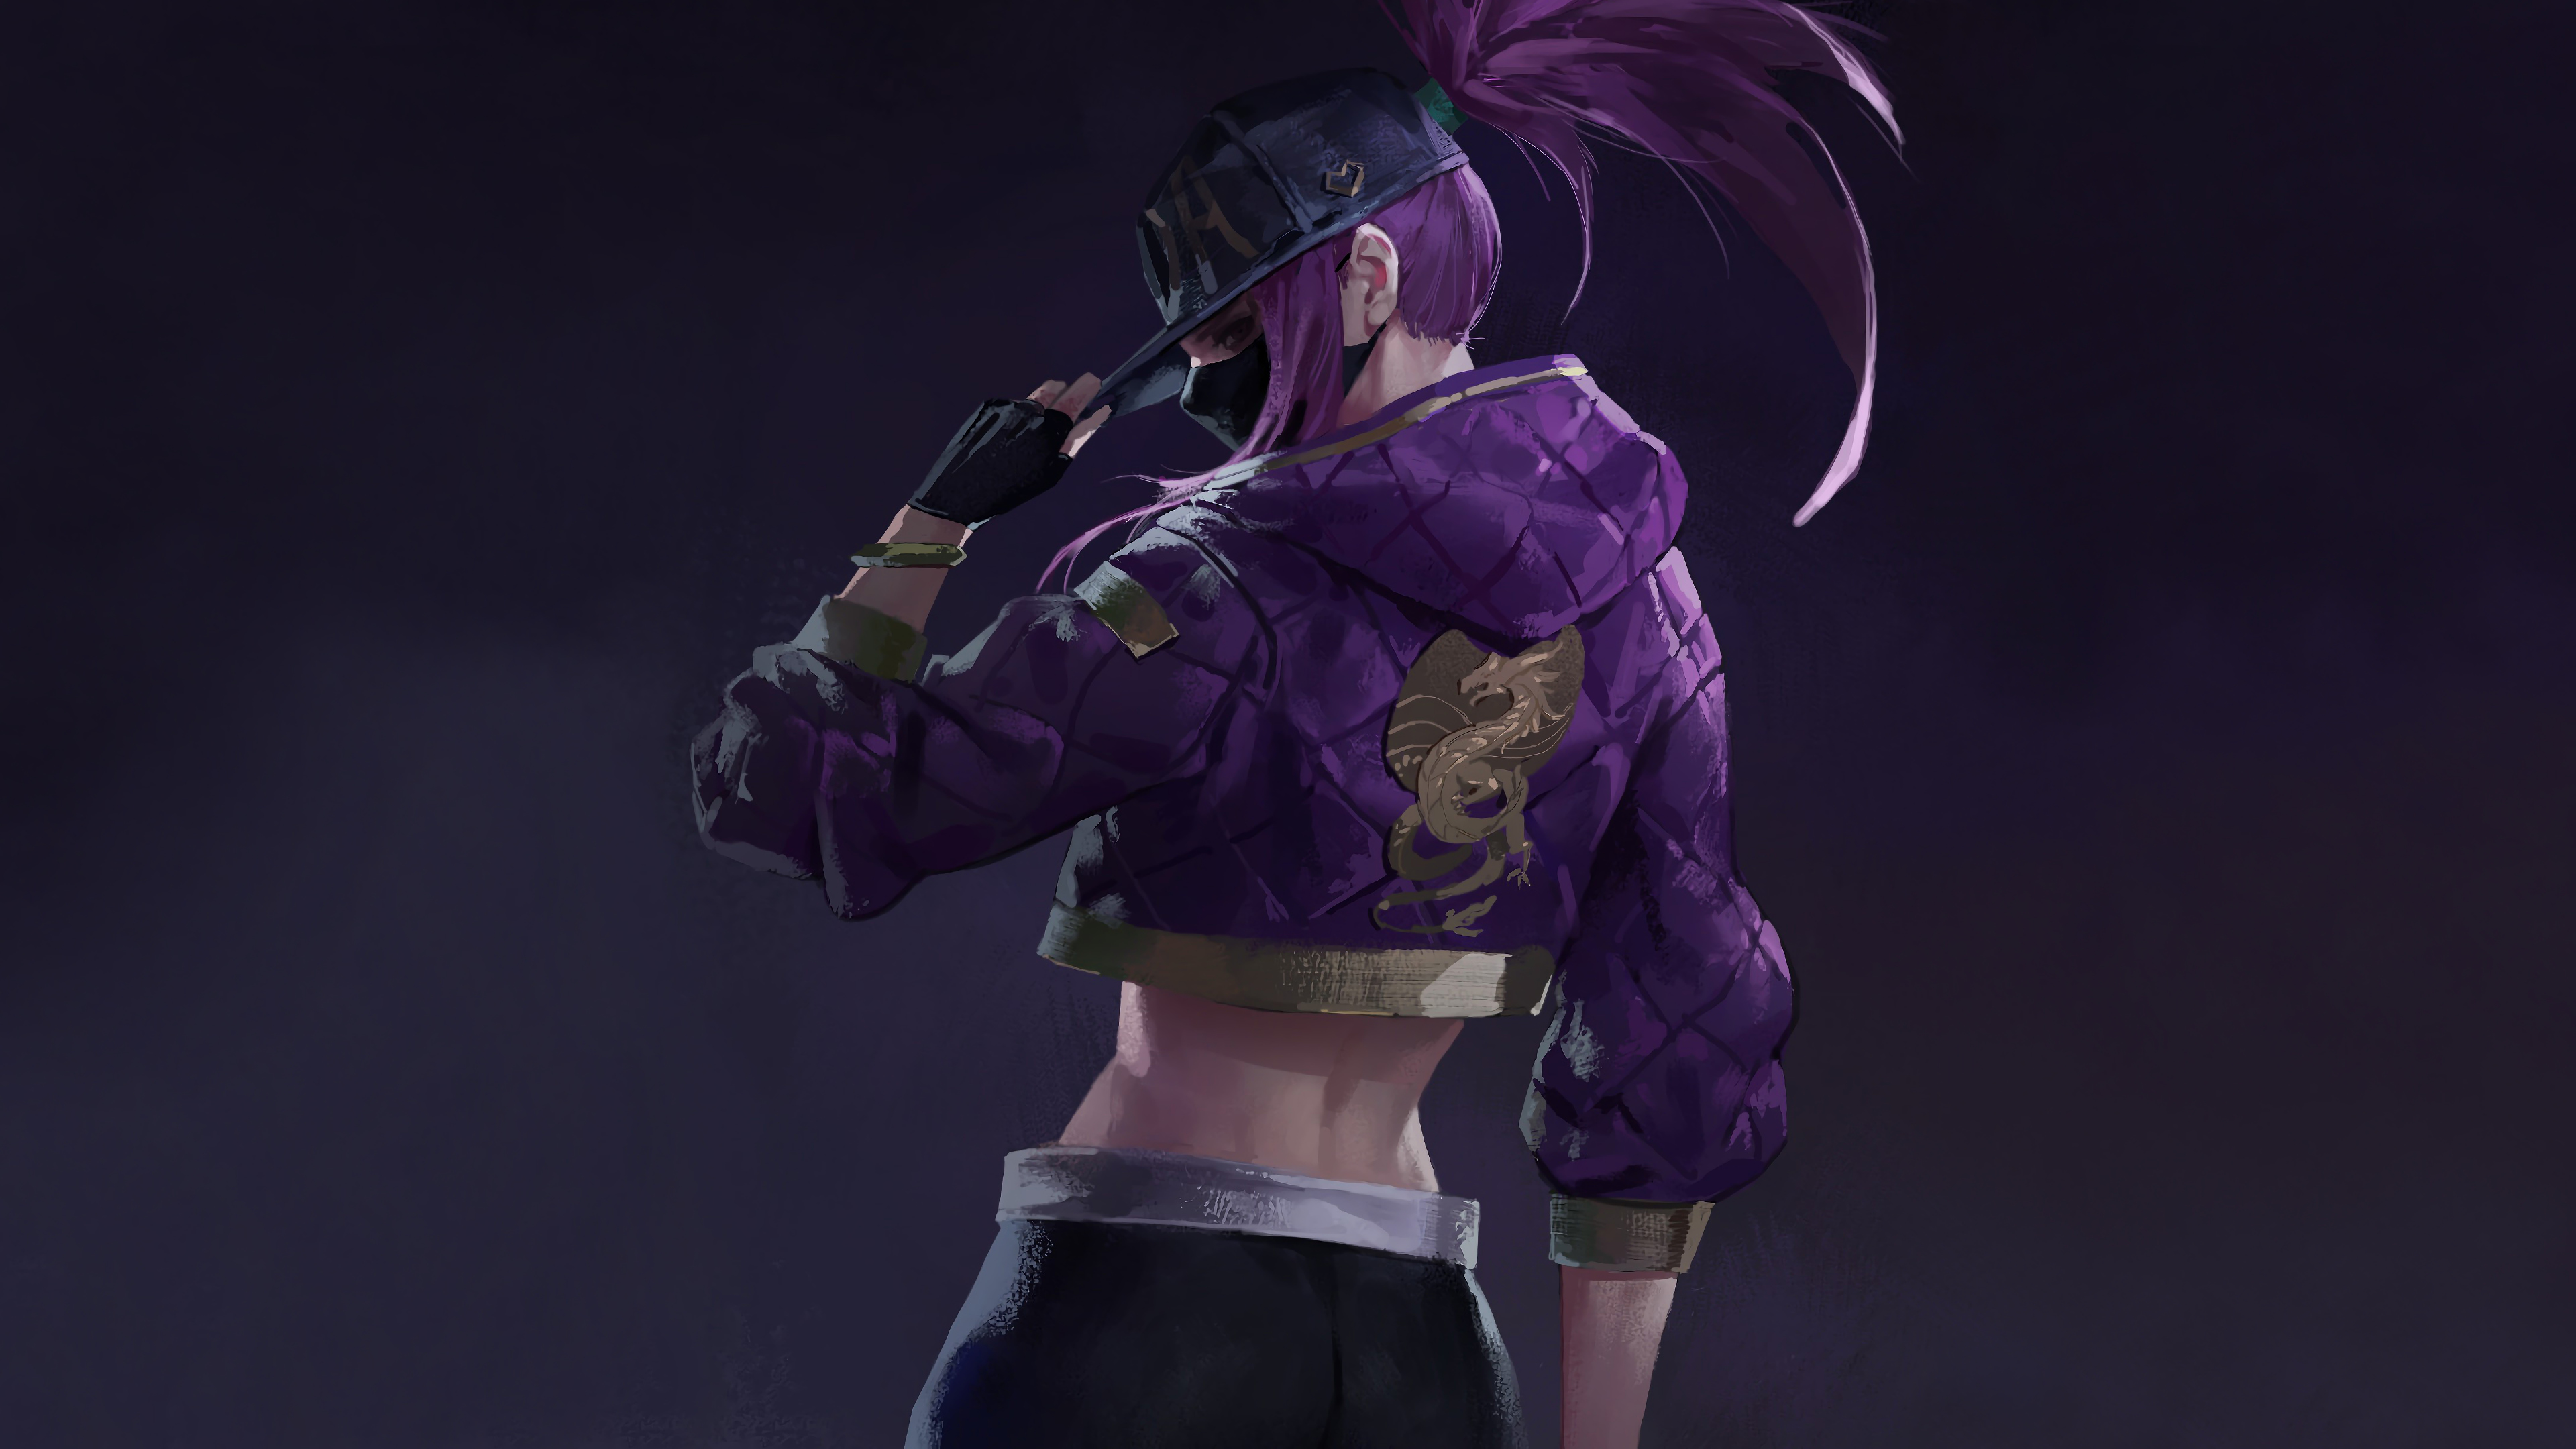 League Of Legends Akali League Of Legends Video Game Art Video Games Video Game Characters Violet Ha 3840x2160